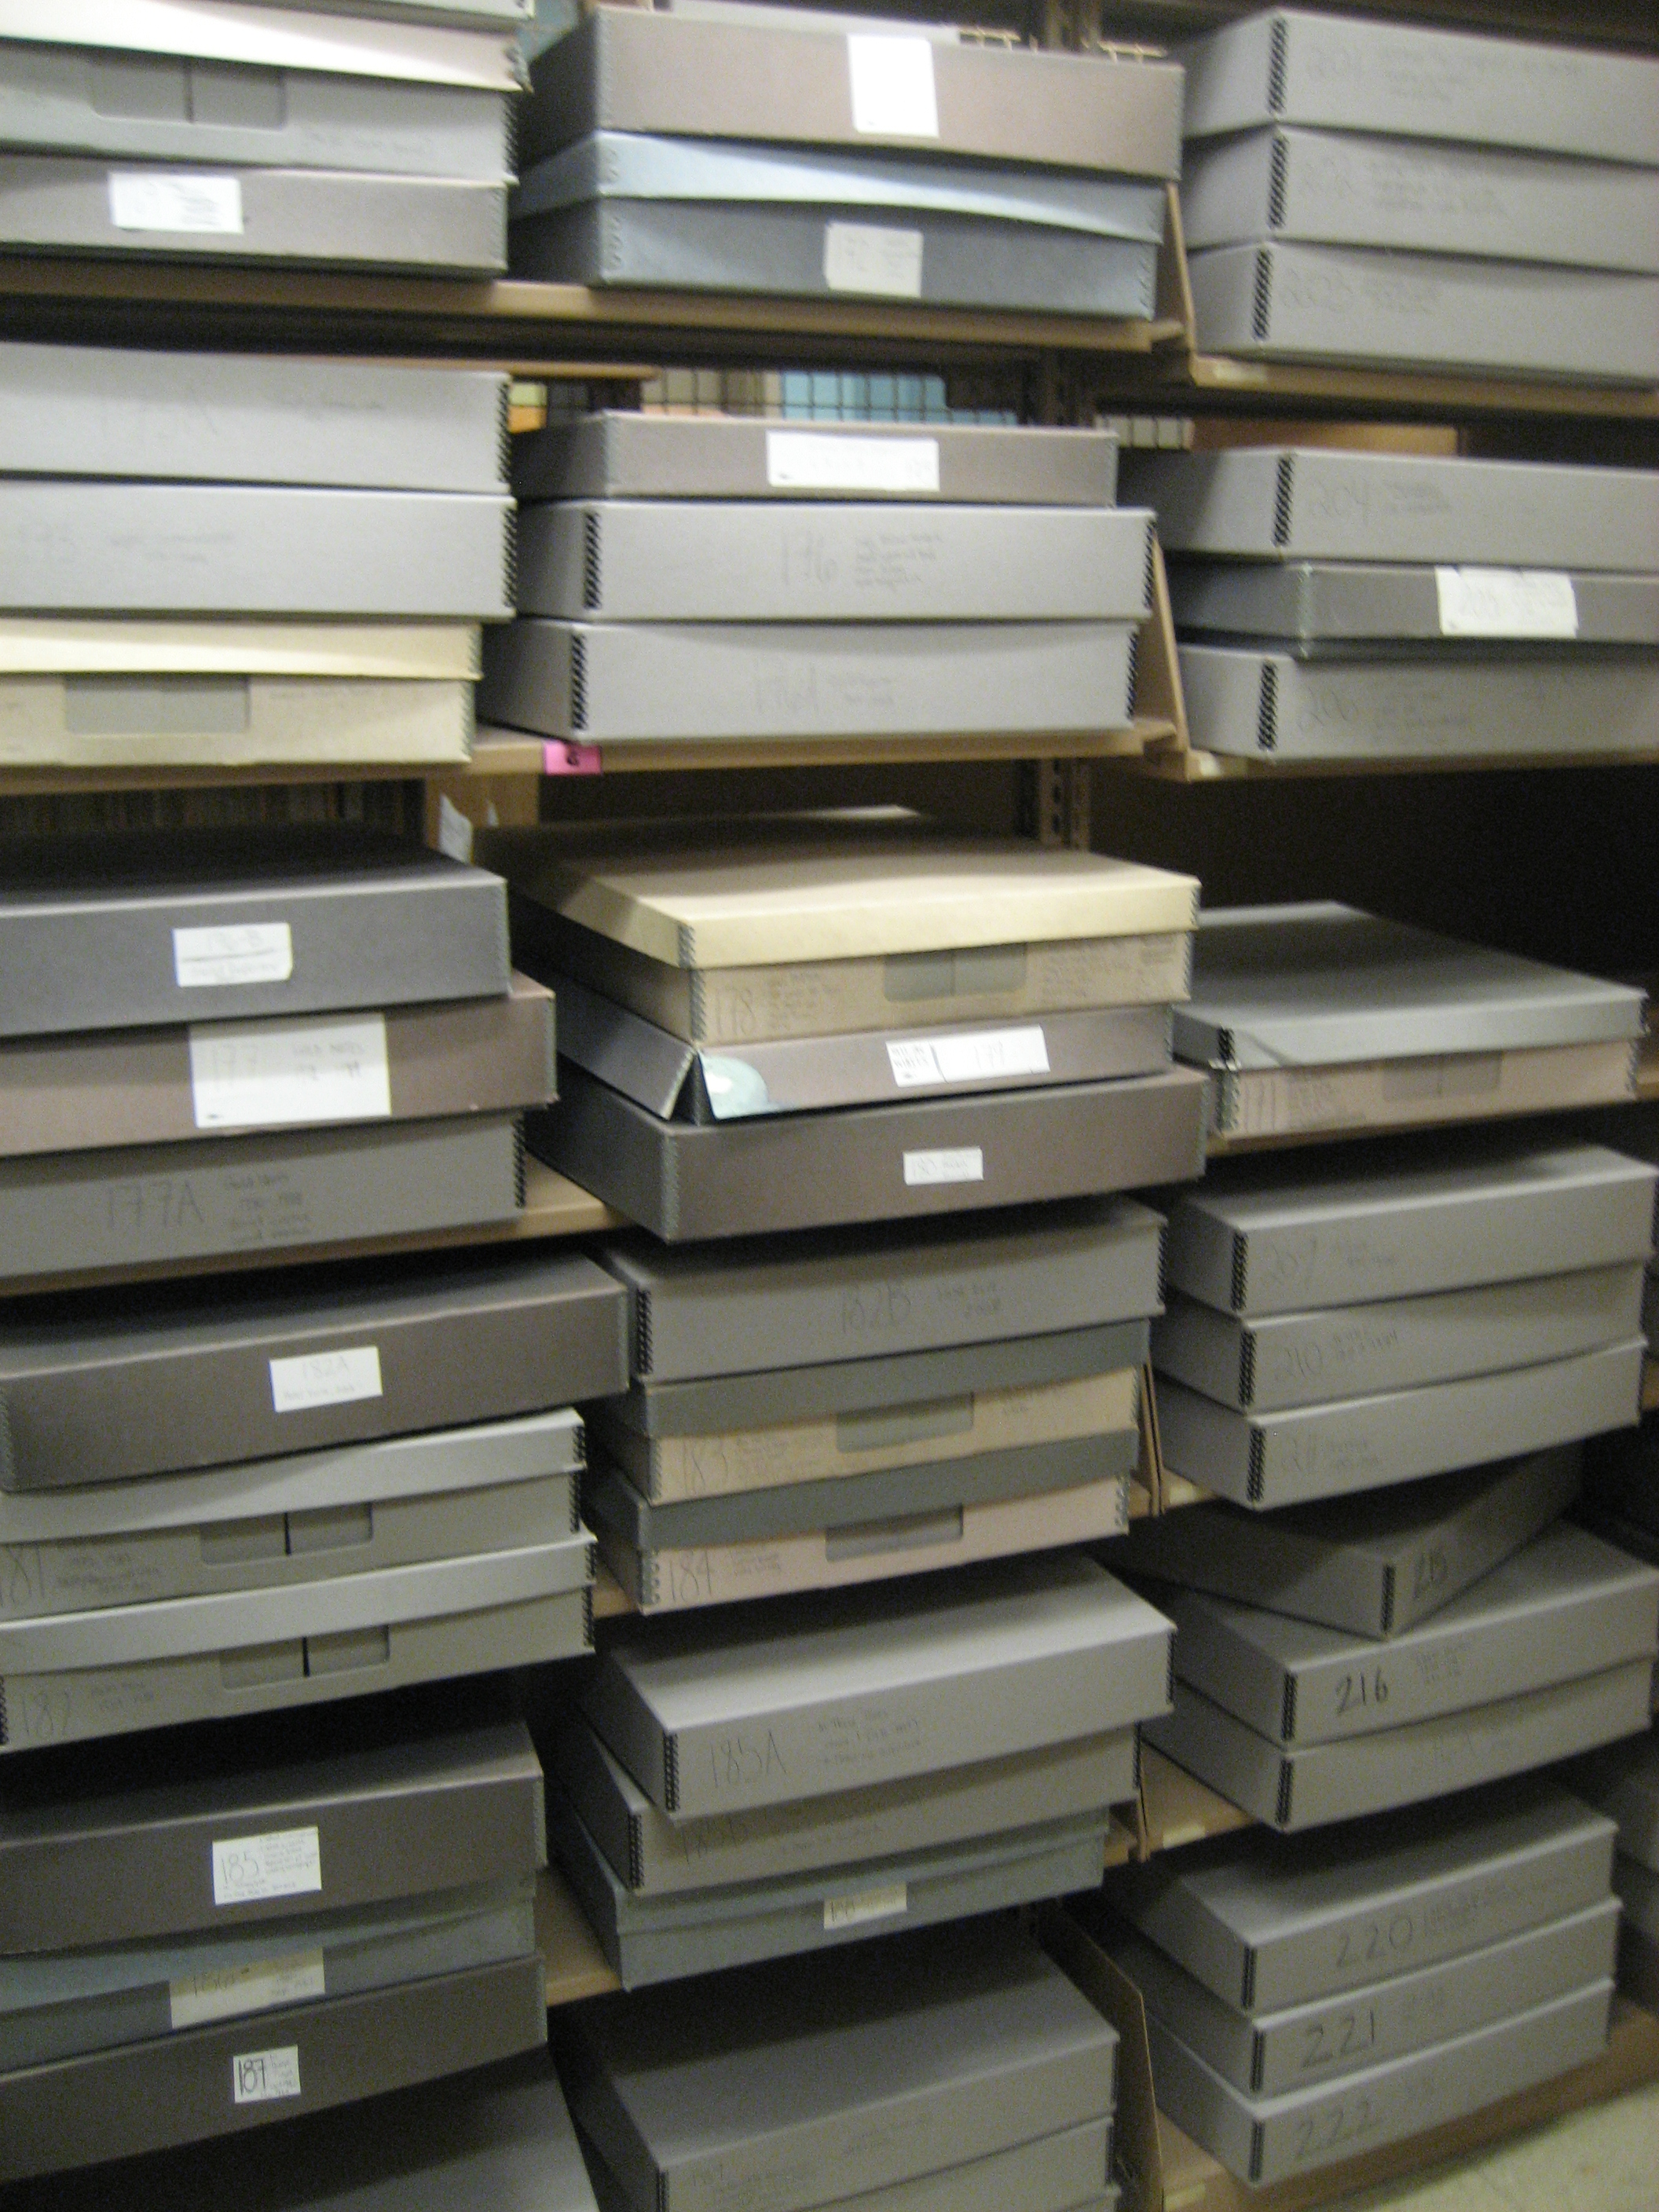 Flat archival boxes for newspapers on a range of shelves